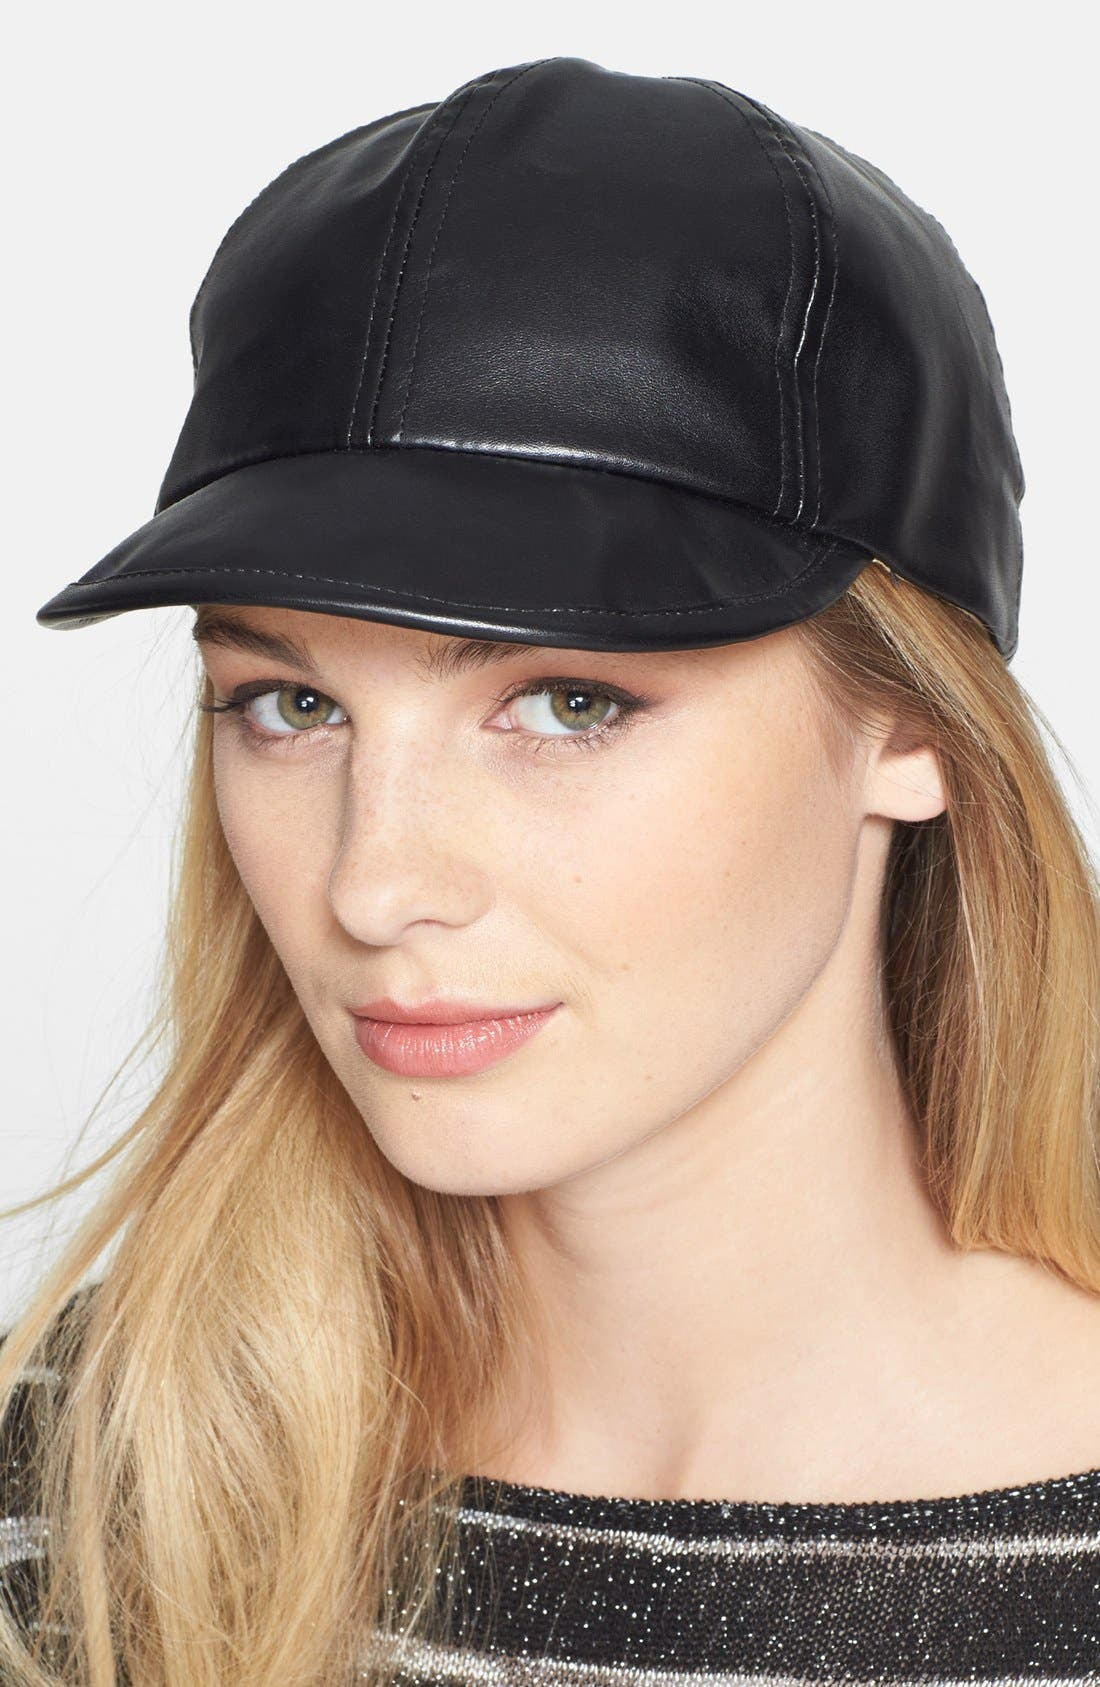 Alternate Image 1 Selected - BCBGeneration 'Boss' Faux Leather Baseball Cap